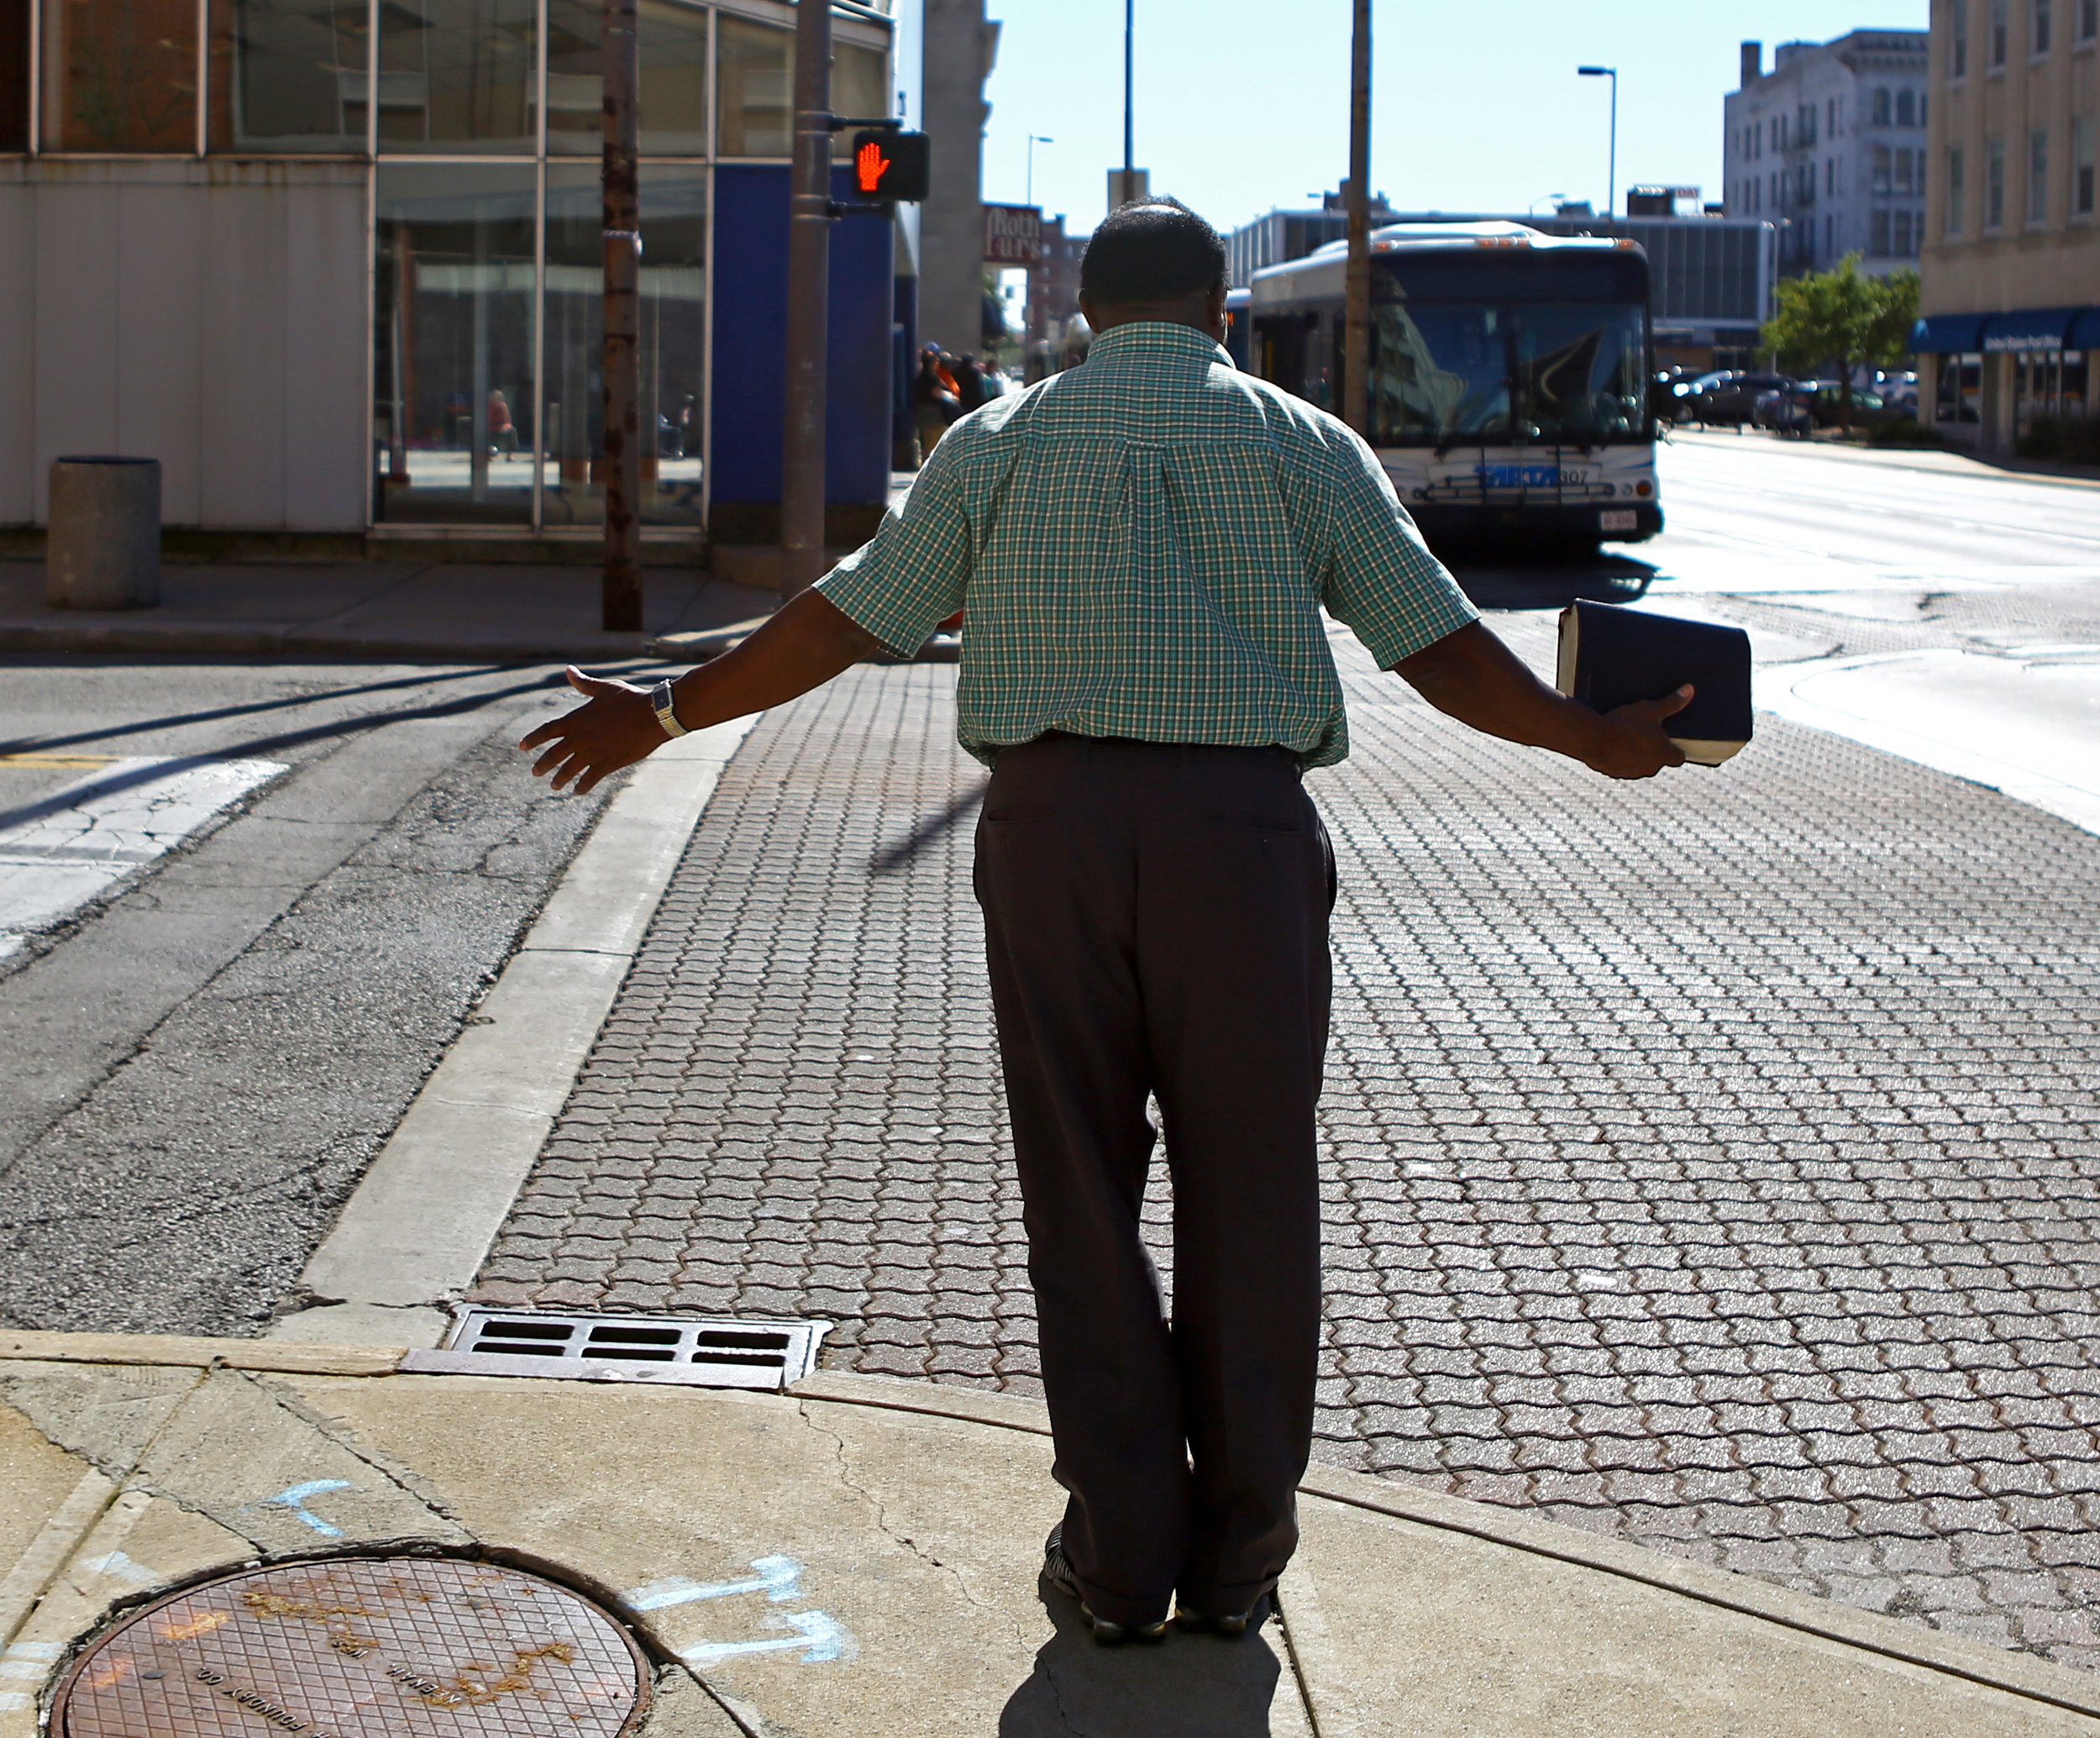 """Brother Gibbs preaches on the corner of Madison Ave. and Erie St. on Tuesday, Sept. 27, 2016. Brother Gibbs tries to preach on this corner at least four times a week and says """"I ain't spreading bad news, I'm spreading good news."""""""